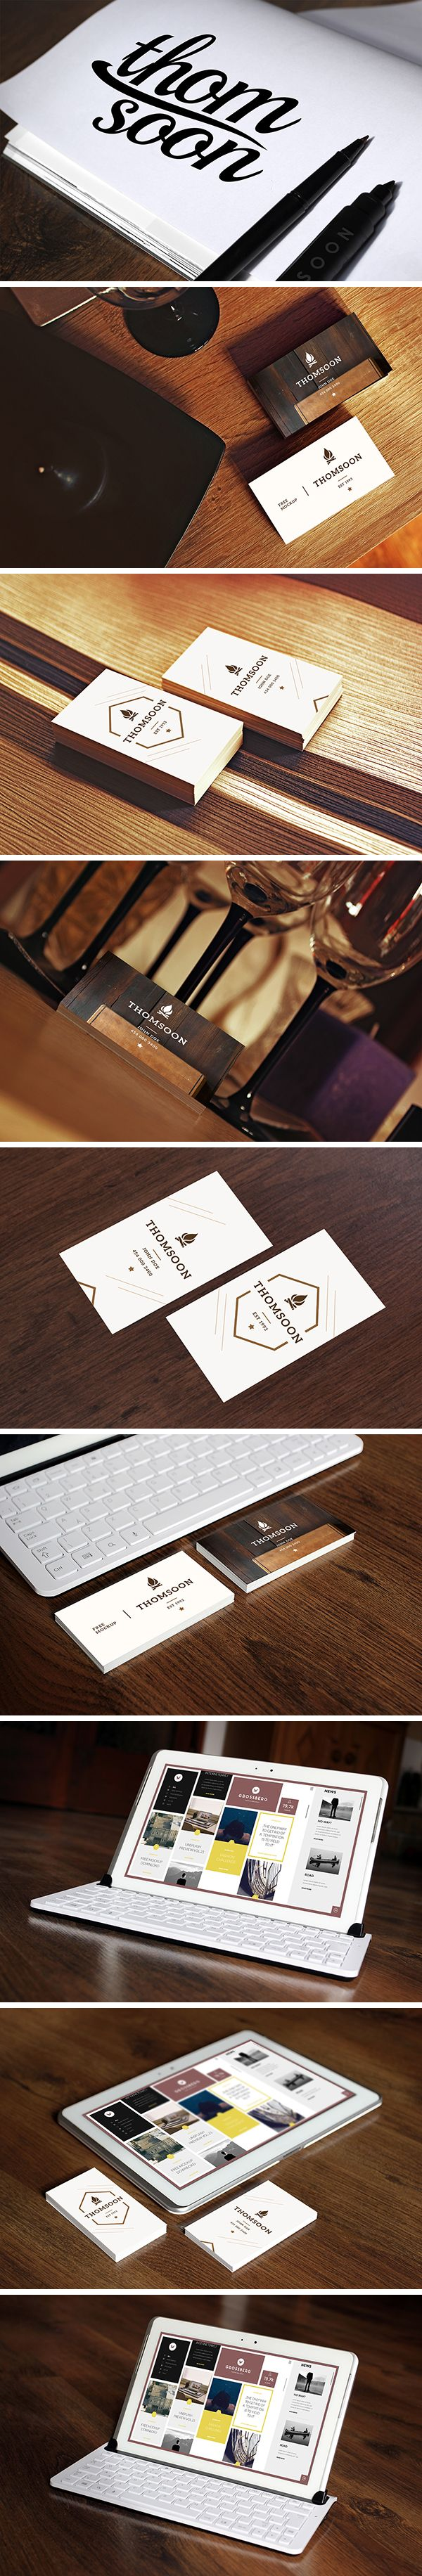 Showcase your design projects with this beautiful collection of business cards and tablet mock-ups released by Tomasz Mazurczak. PSD files are fully layered